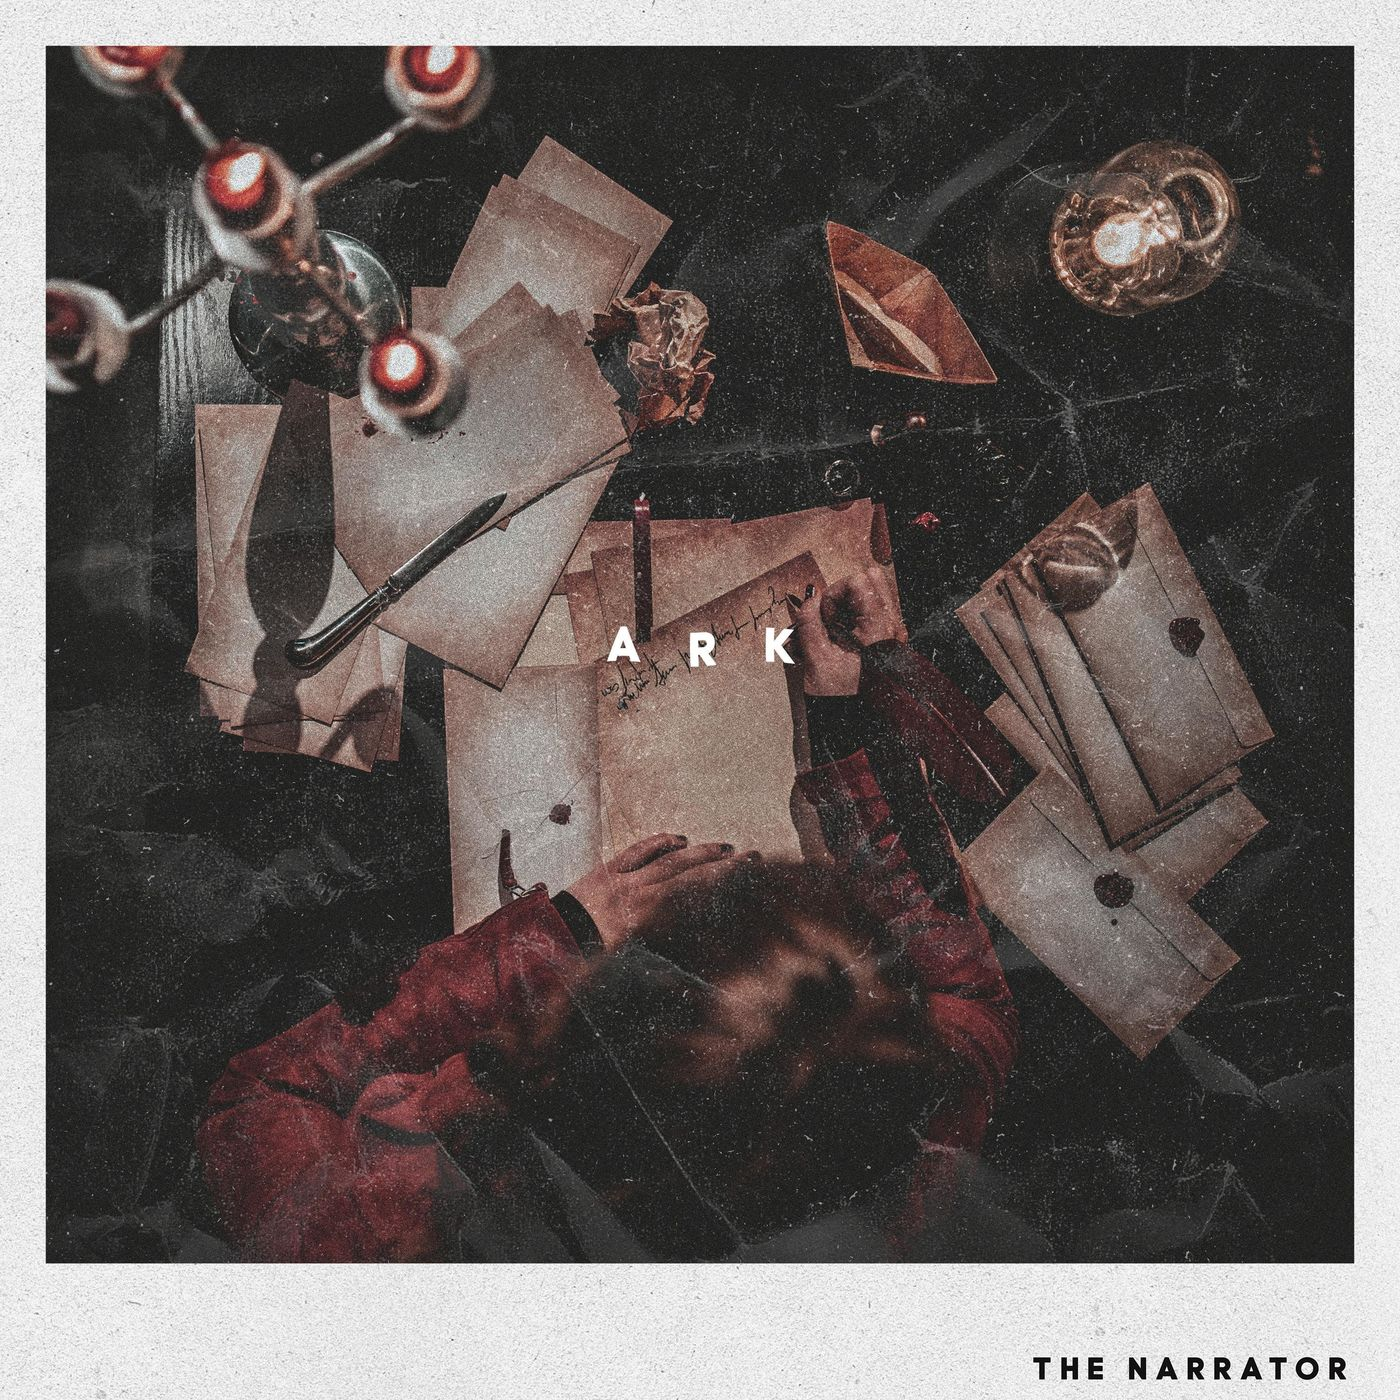 The Narrator - Ark [single] (2020)